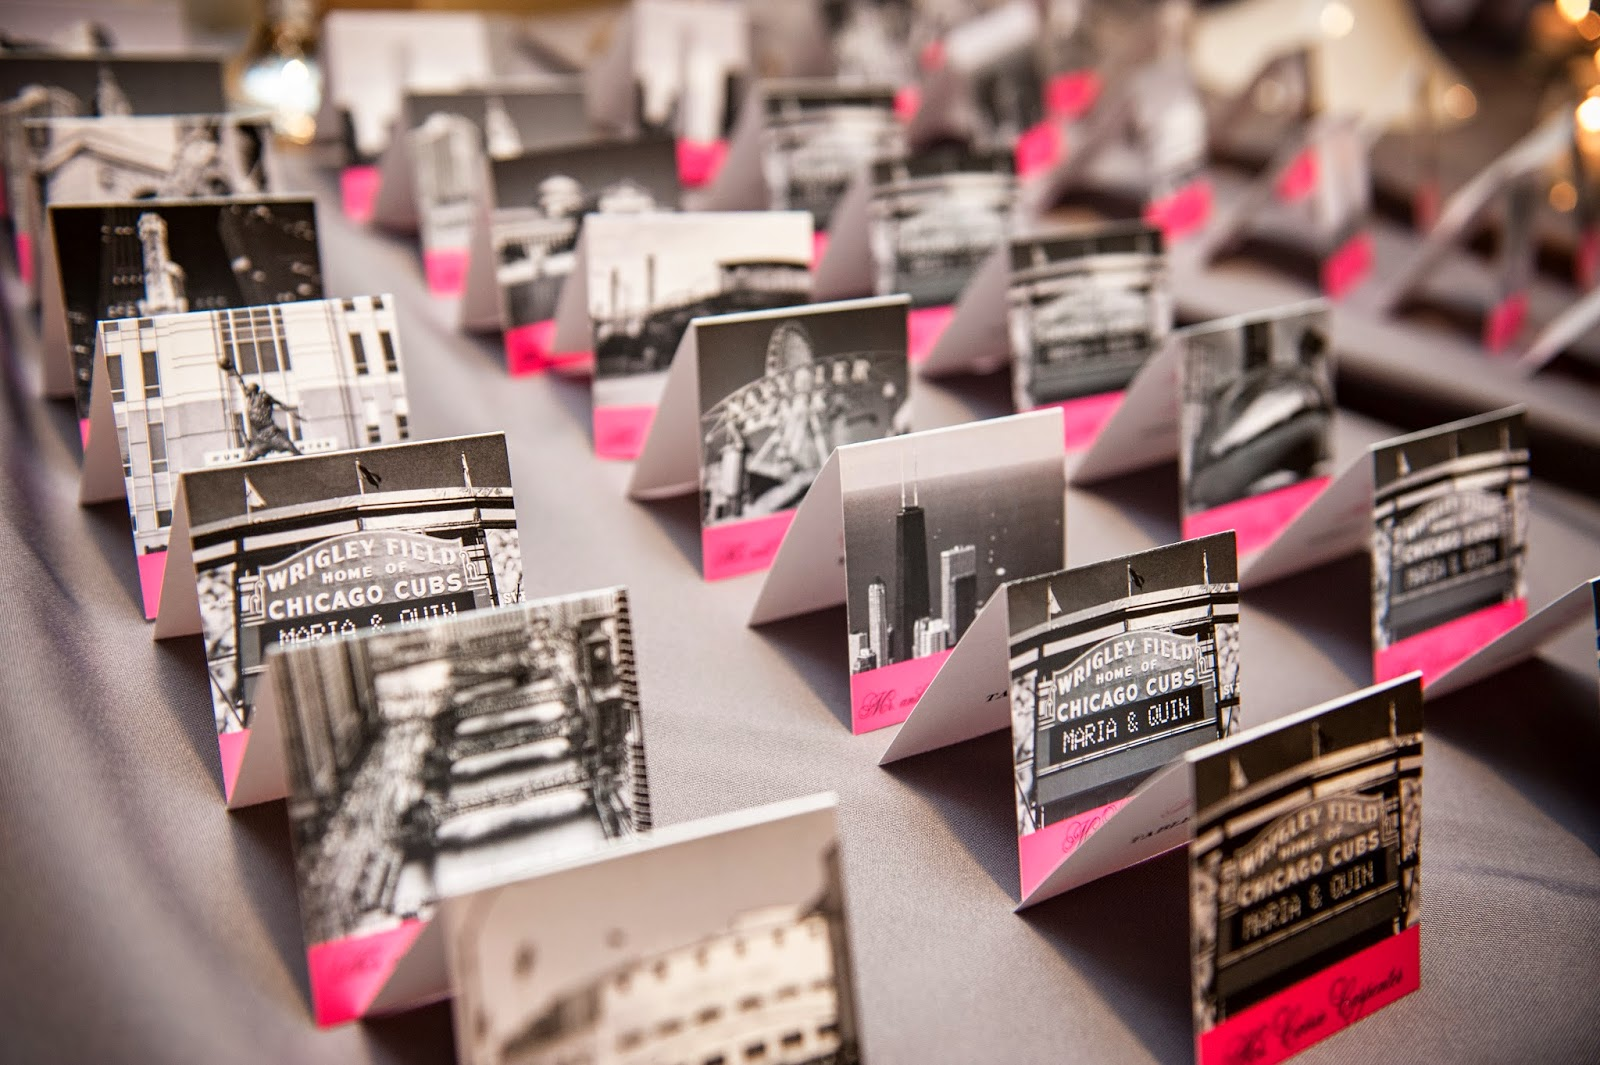 For Wedding Favors The Gave Out Treats That Paid Homage To Their Heritage And Host City Incorporate Bride S Italian